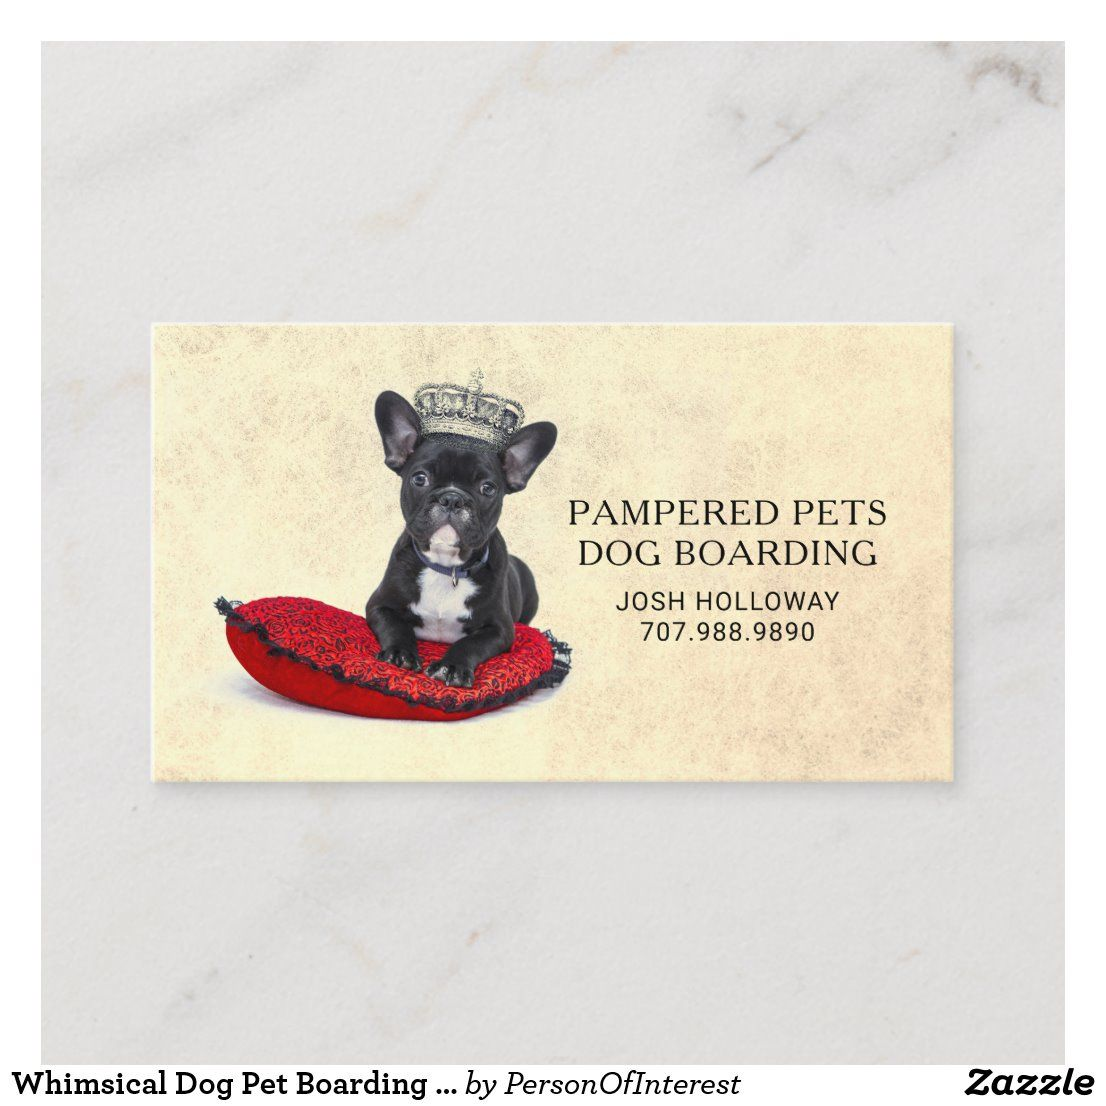 Whimsical Dog Pet Boarding Daycare Kennel Business Card Zazzle Com Pet Boarding Pet Care Business Pet Dogs